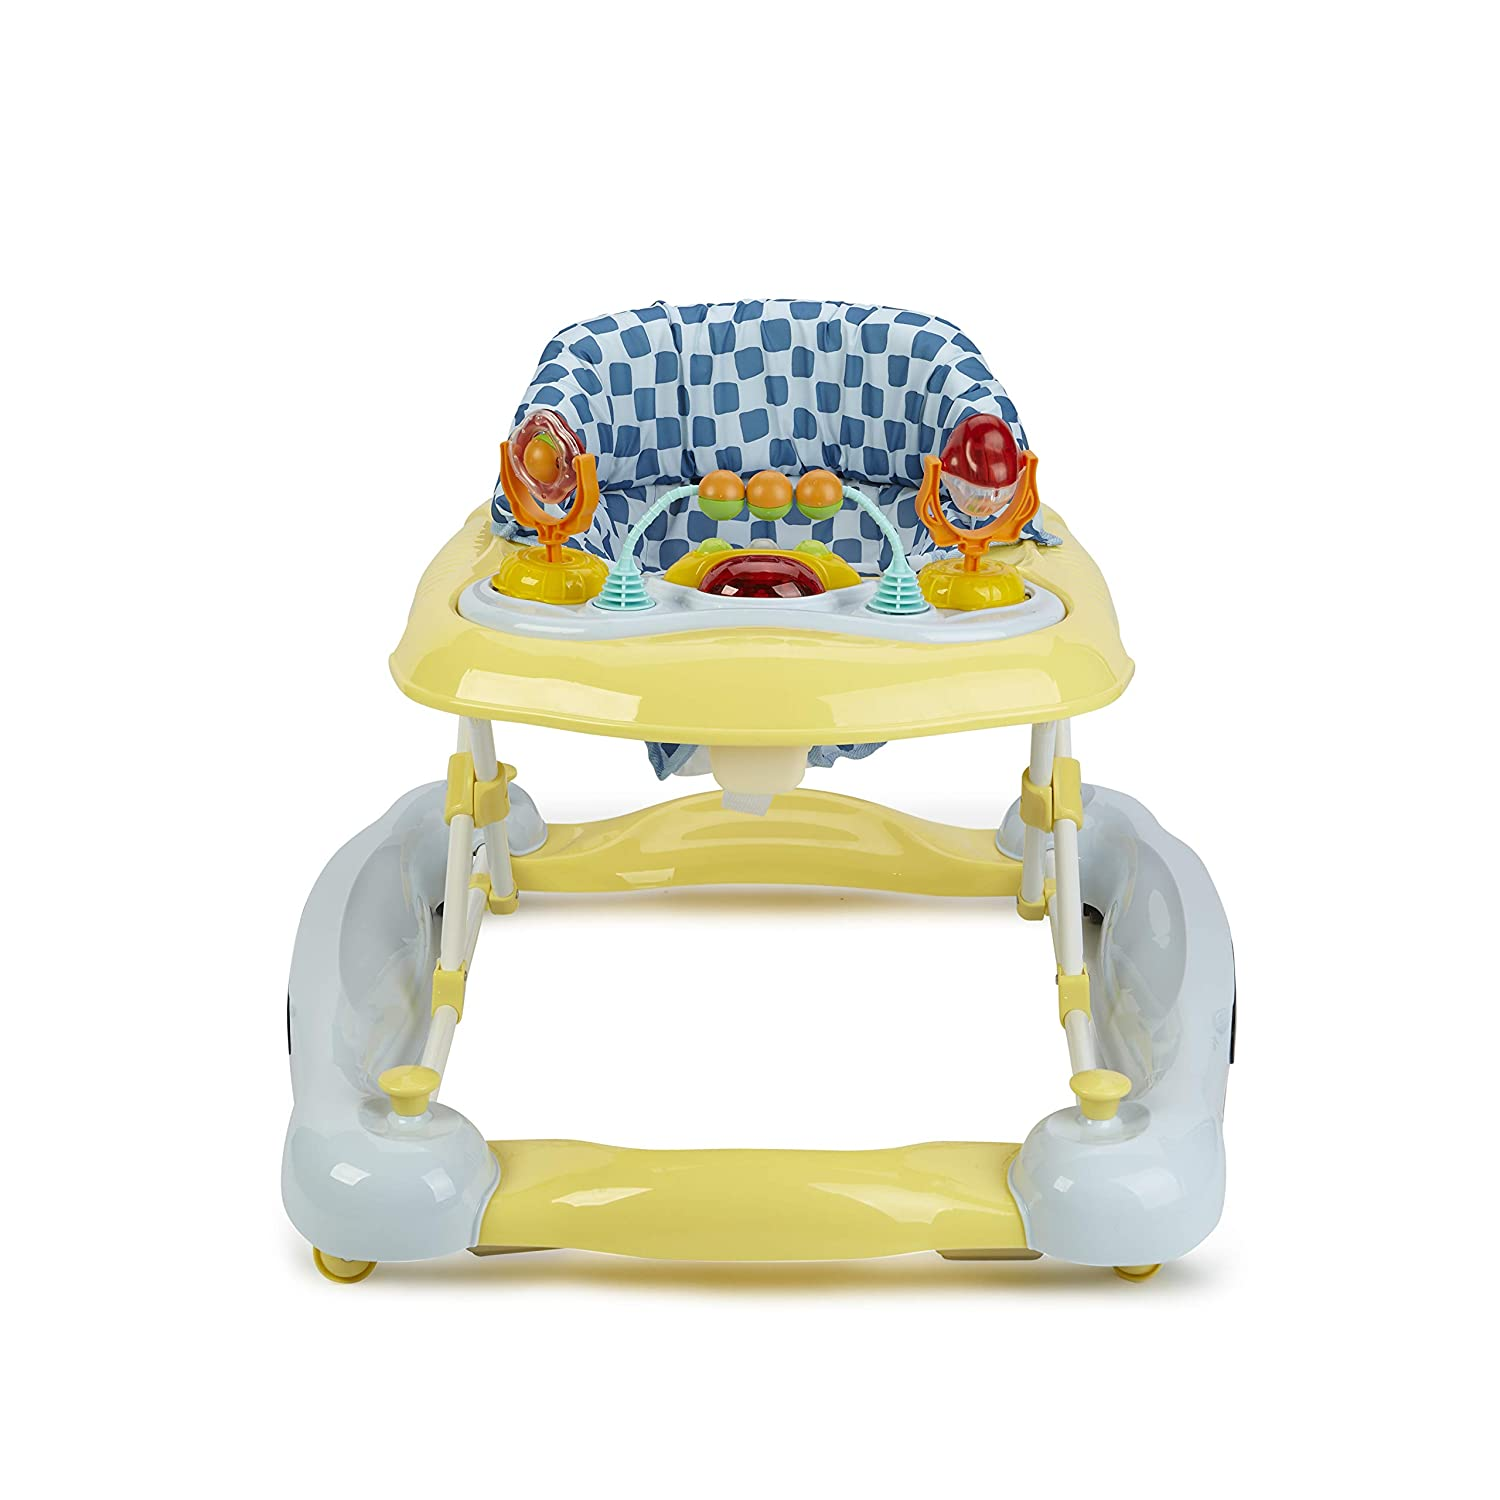 Black//Yellow//Bear Print Big Oshi 3 in 1 Baby Walker Adjustable Seat Convertible Walker to Rocker with Tray Table Baby Activity Center with Toys Rocker /& Activity Center on Wheels Boys